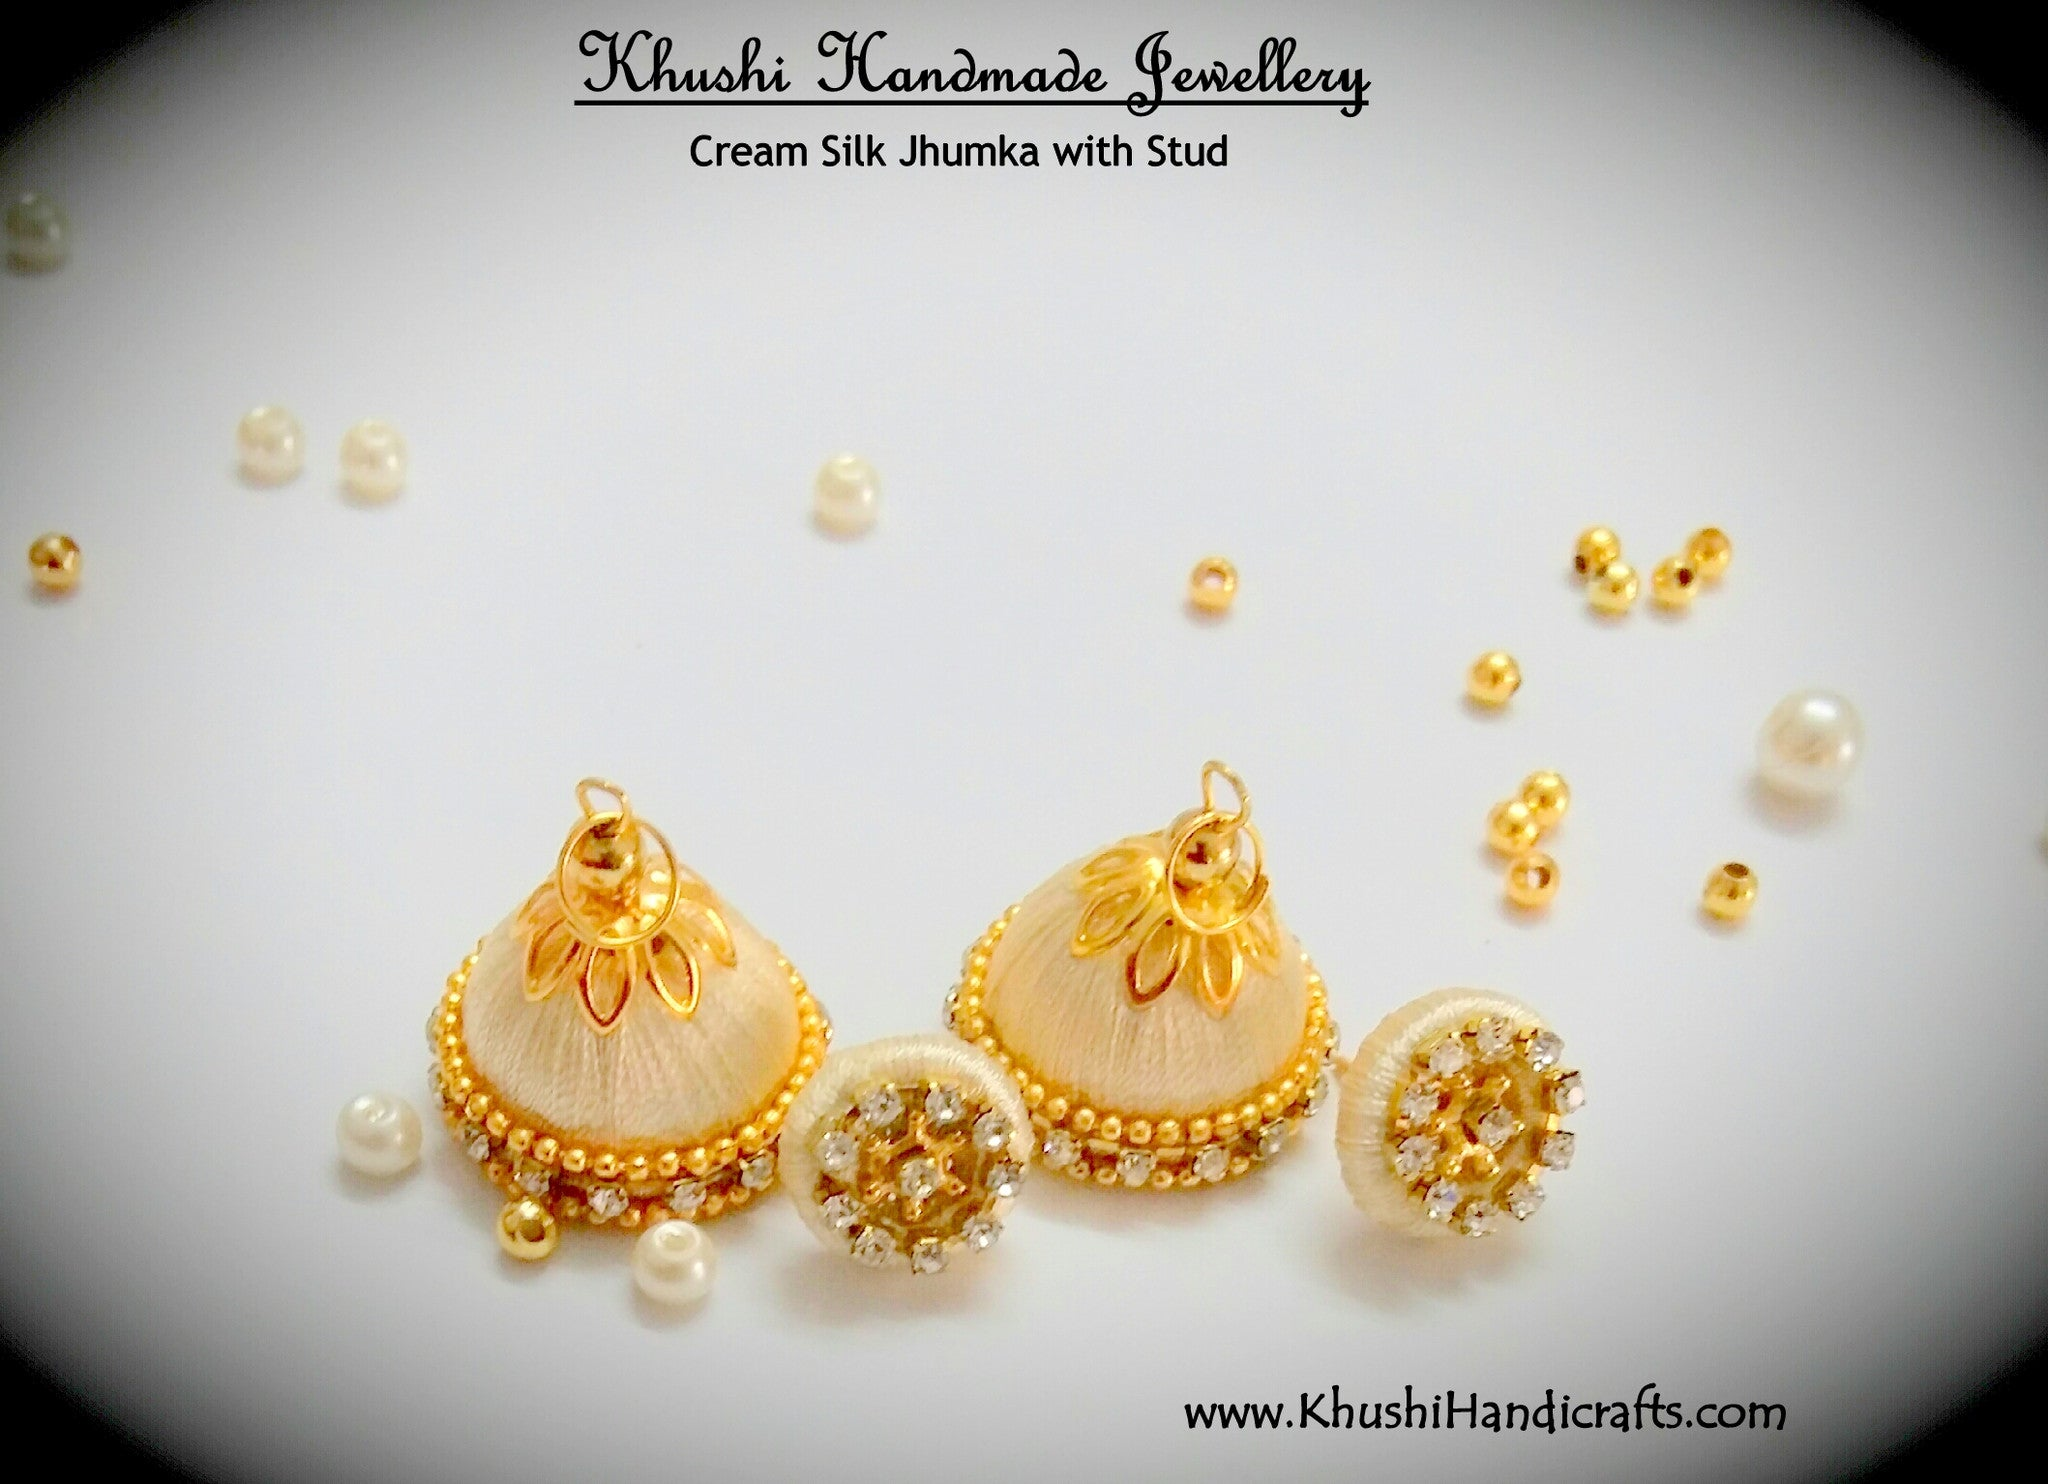 Cream Silk Jhumkas with Stud - Khushi Handmade Jewellery